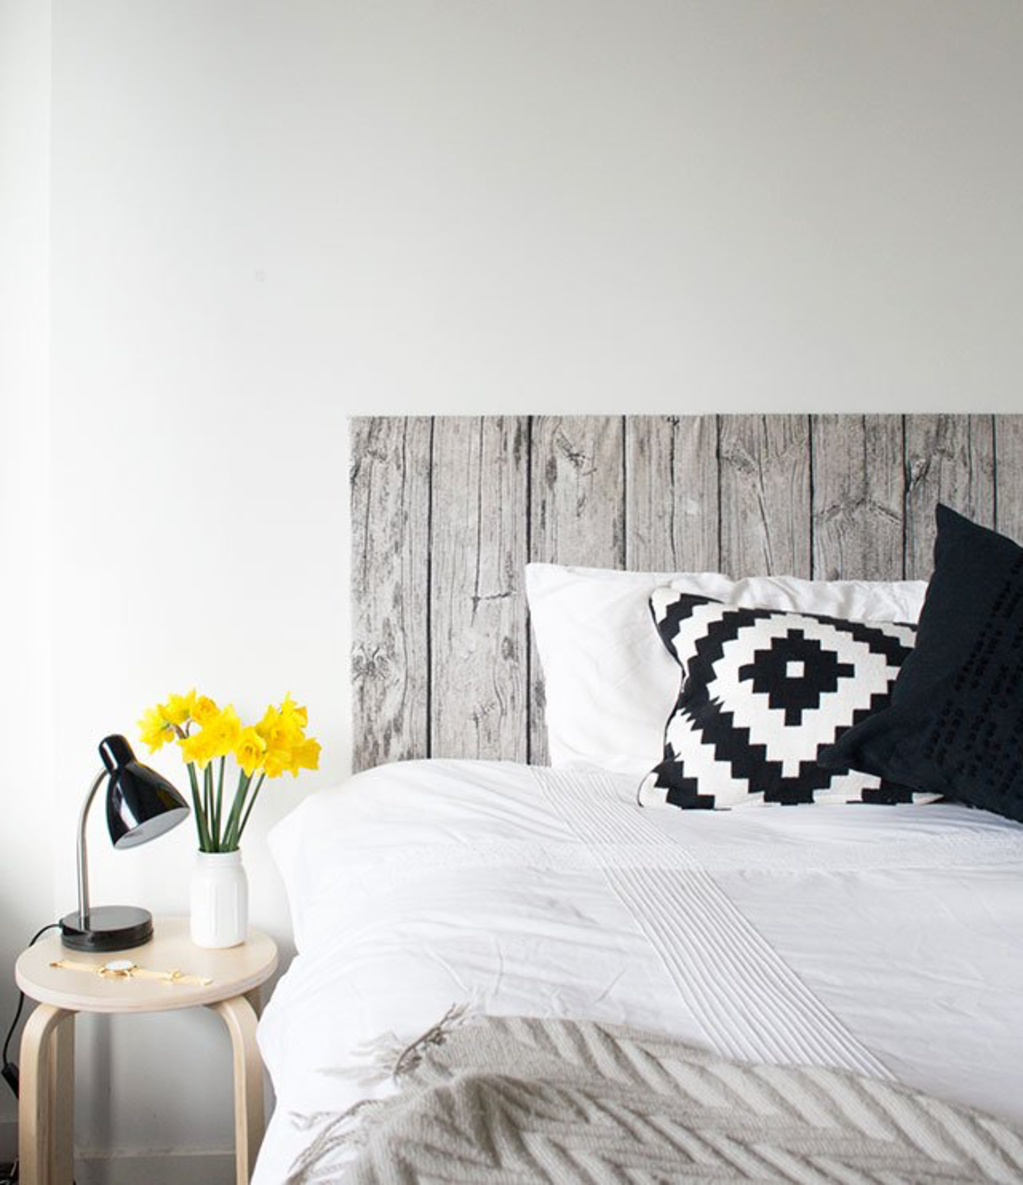 25 Clever DIY Projects for the Bedroom